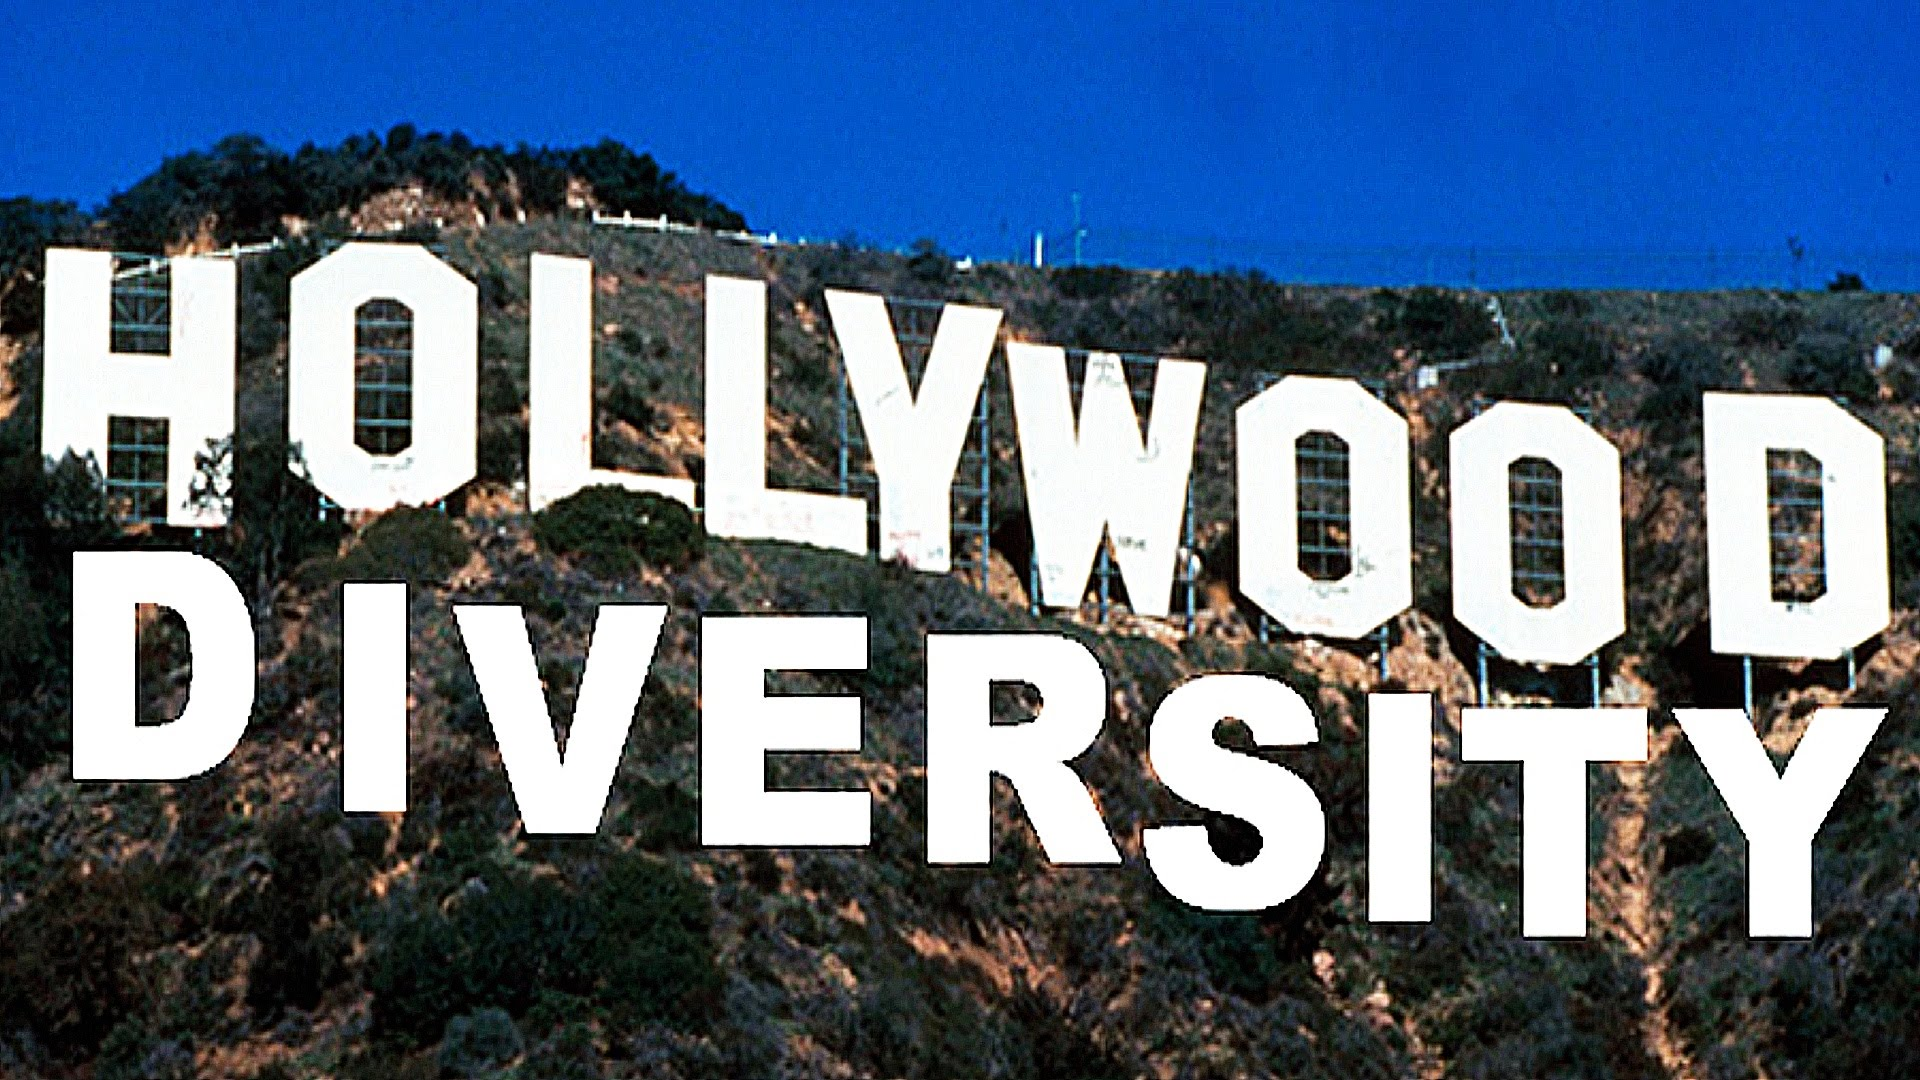 letters spelling out Hollywood and Diversity on top of a mountain with trees